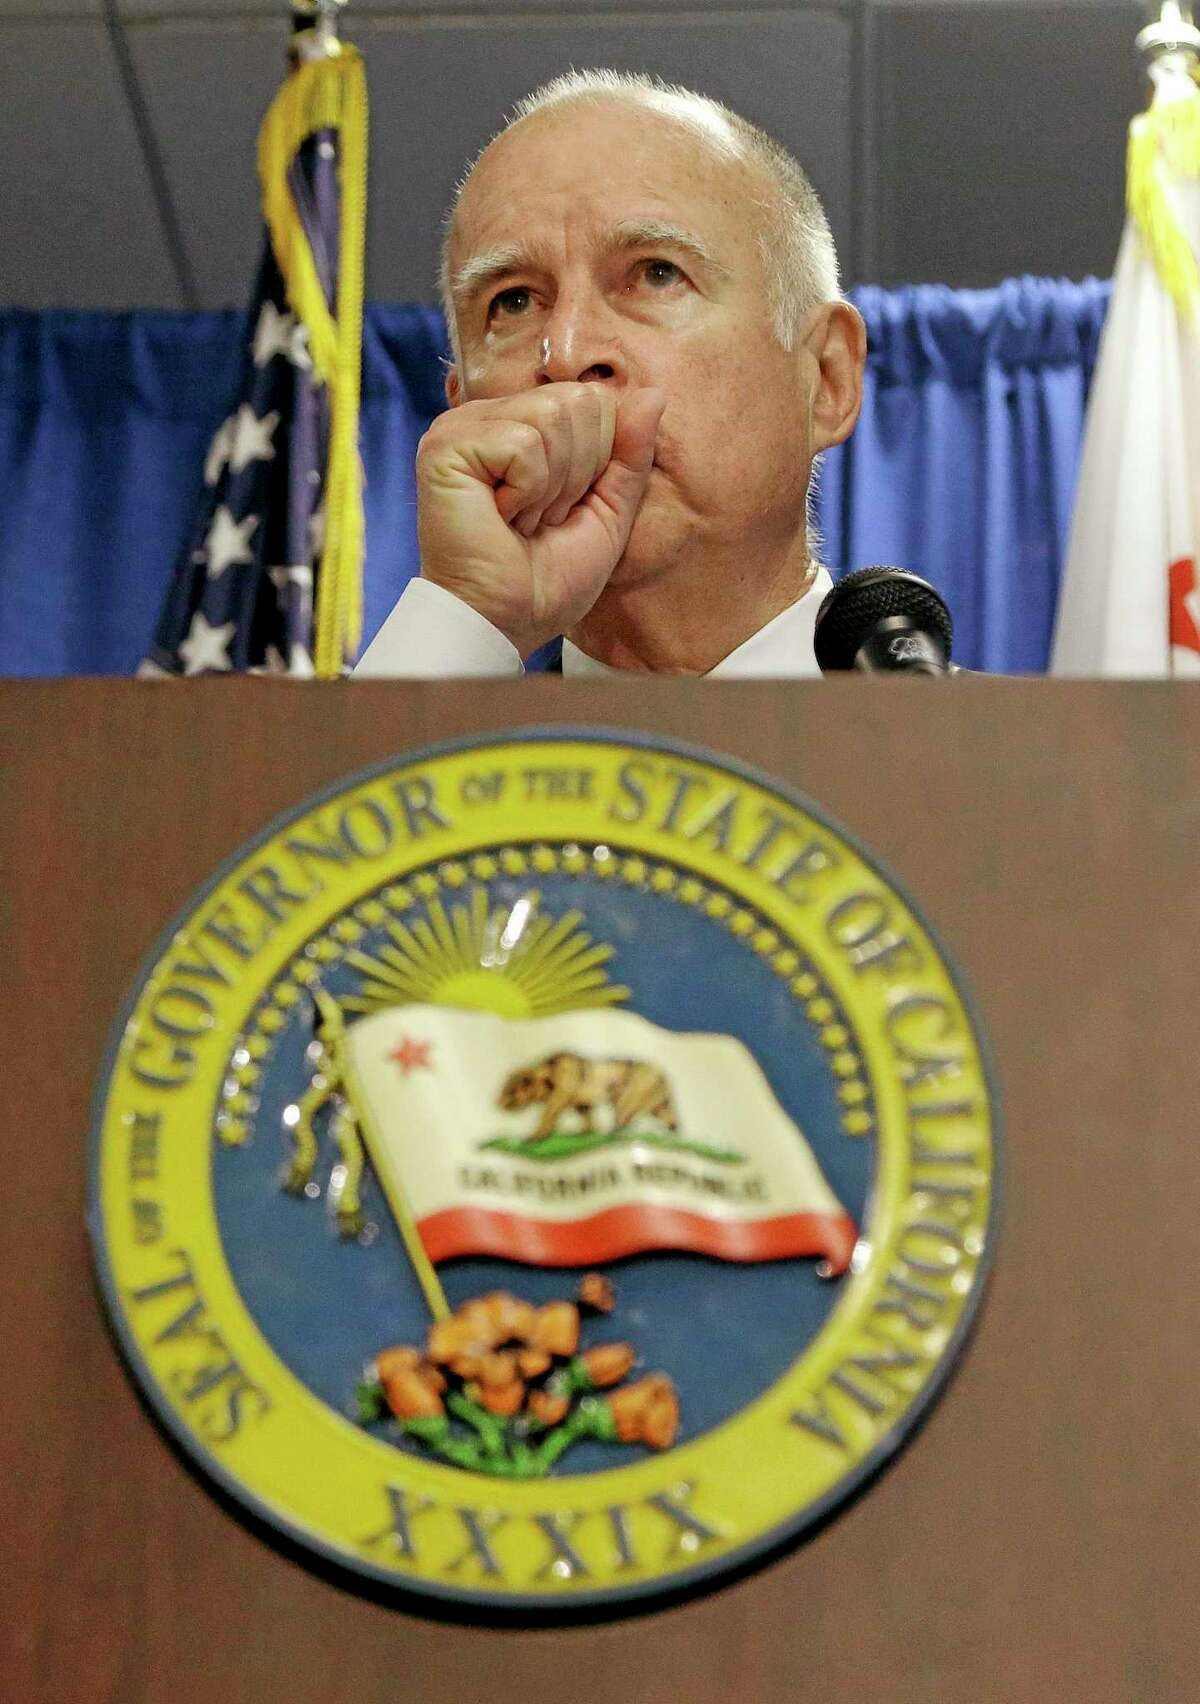 Gov. Jerry Brown pauses while declaring drought state of emergency in San Francisco, Friday, Jan. 17, 2014. With a record-dry year, reservoir levels under strain and no rain in the forecast, California Gov. Jerry Brown formally proclaimed the state in a drought Friday, confirming what many already knew. Brown made the announcement in San Francisco amid increasing pressure in recent weeks from the state's lawmakers, including Democratic Sen. Dianne Feinstein. (AP Photo/Jeff Chiu)